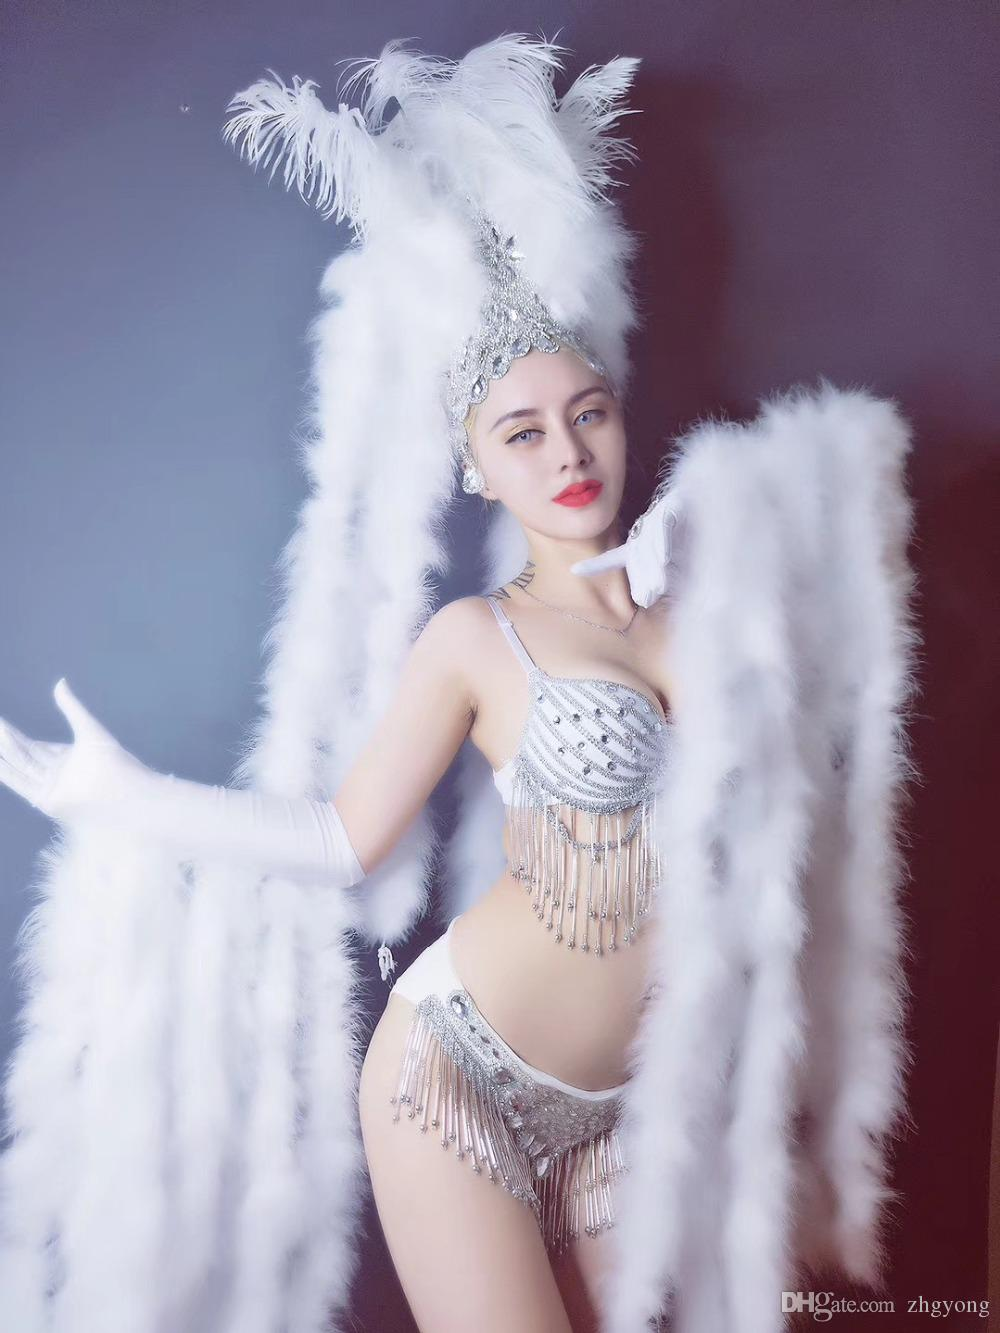 Sexy White Feathers Gloves Headdress Sparkly Crystals Bikini Set Nightclub Female Party Models Catwalk Stage Outfit DJ Costume